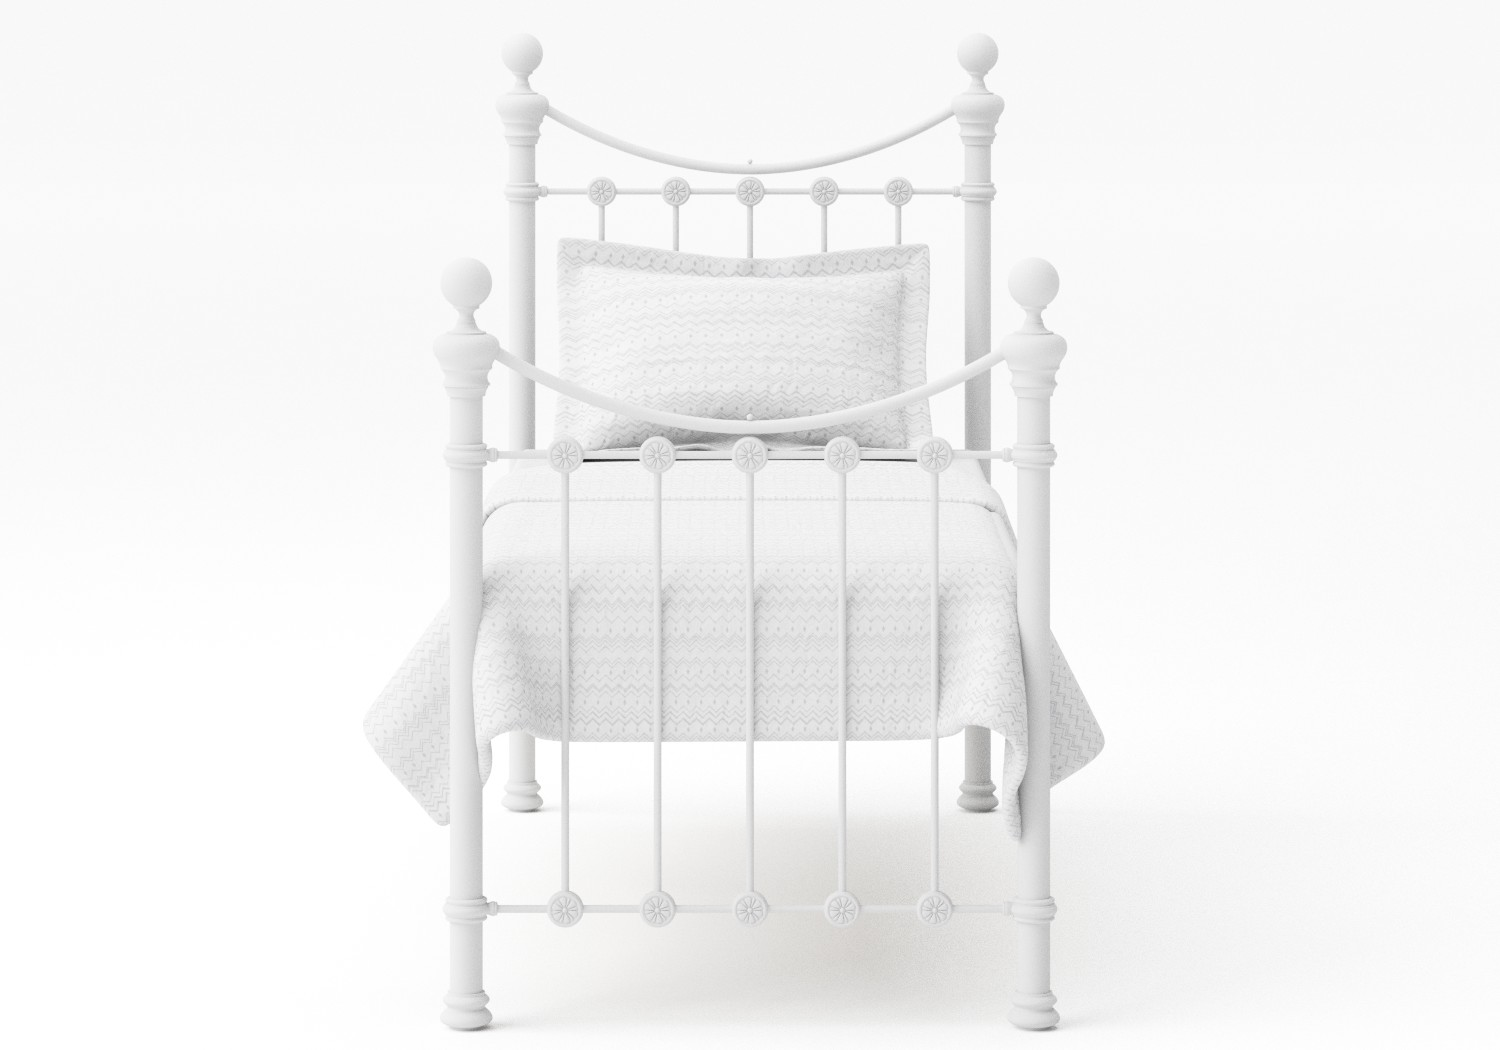 Selkirk Single Iron/Metal Bed in Satin White with white painted details